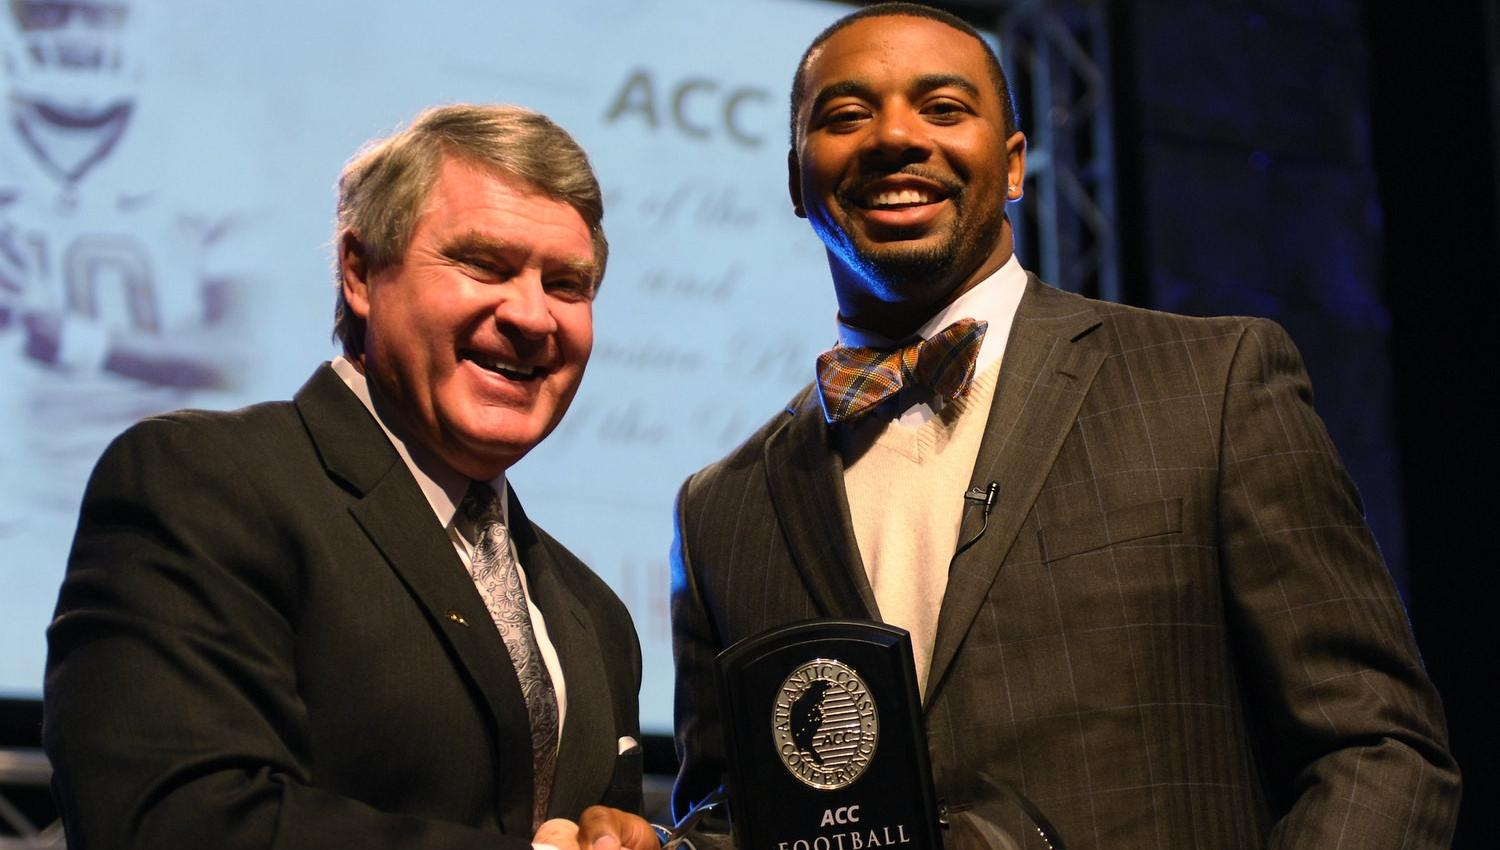 Clemson Football Video Report: Boyd Accepts ACC Player of the Year Award